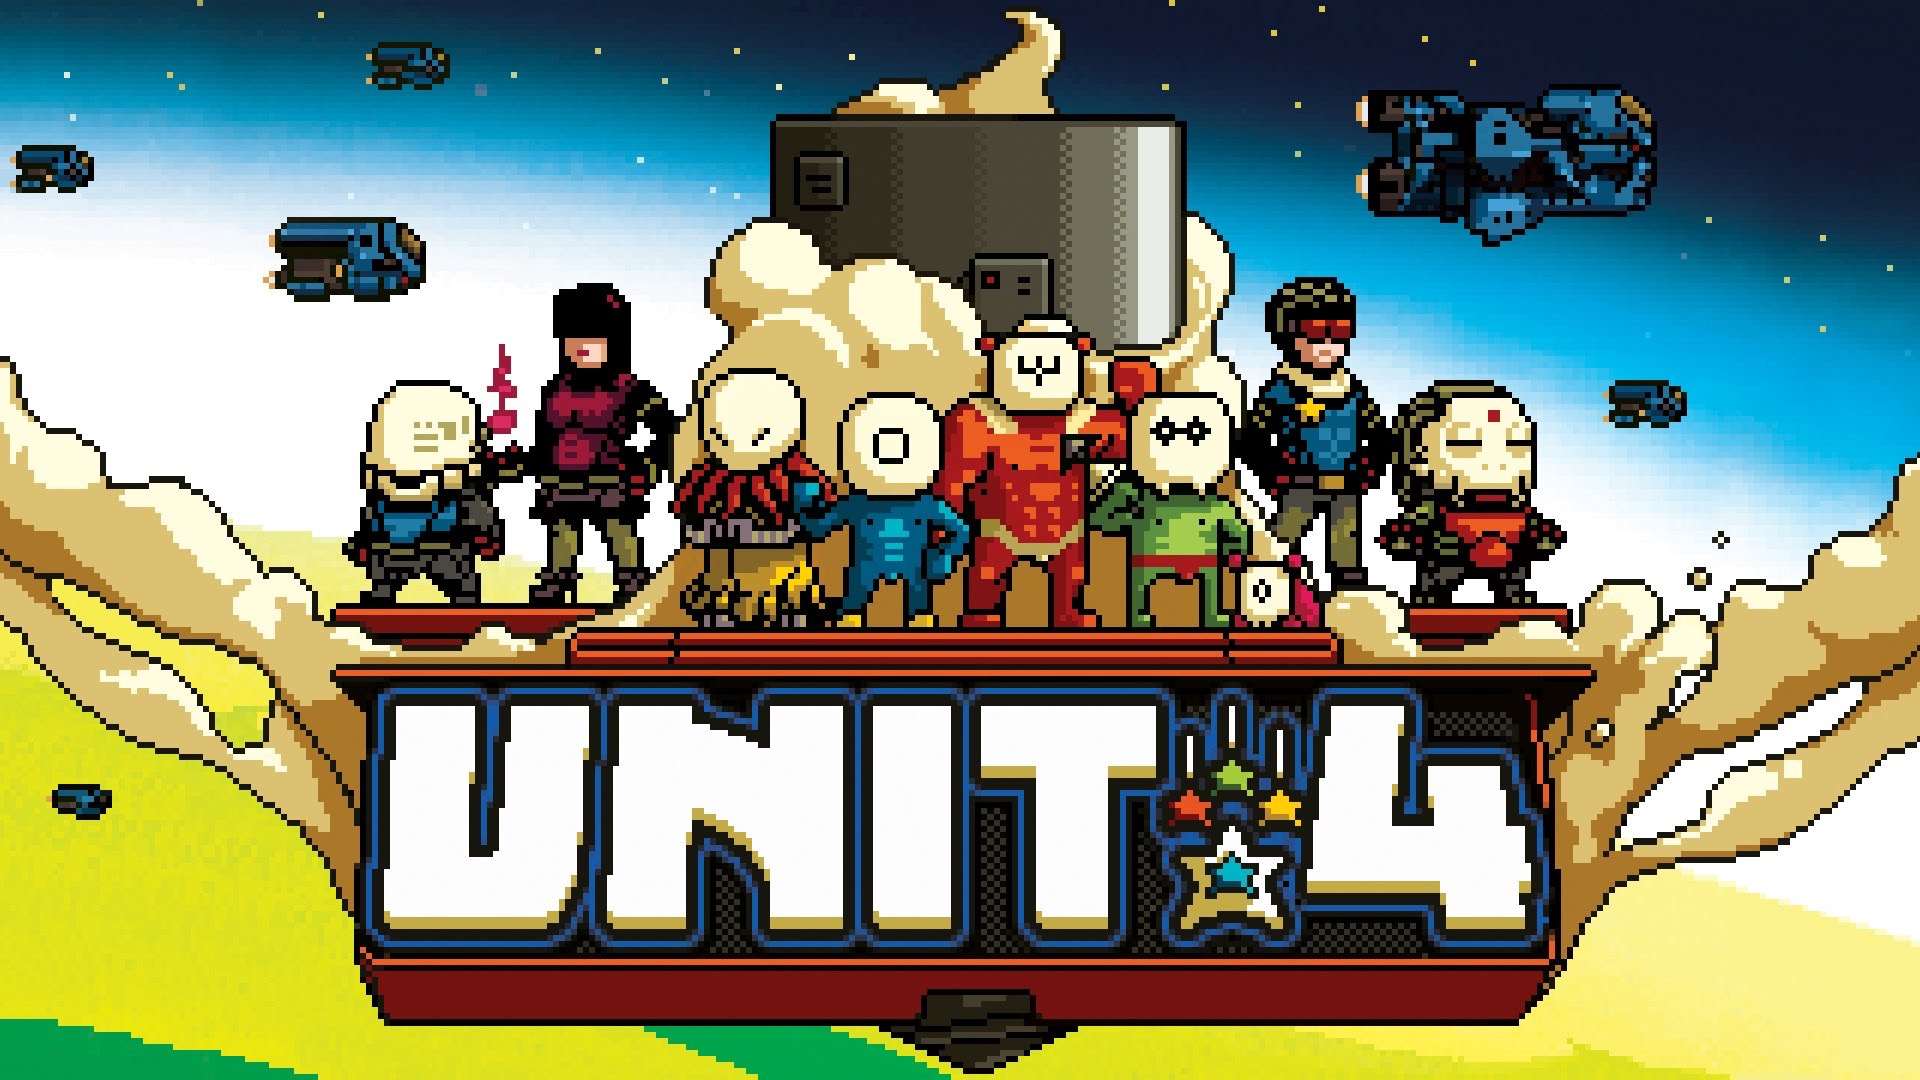 Unit 4 is an Action-Packed Retro Side-Scroller Coming to